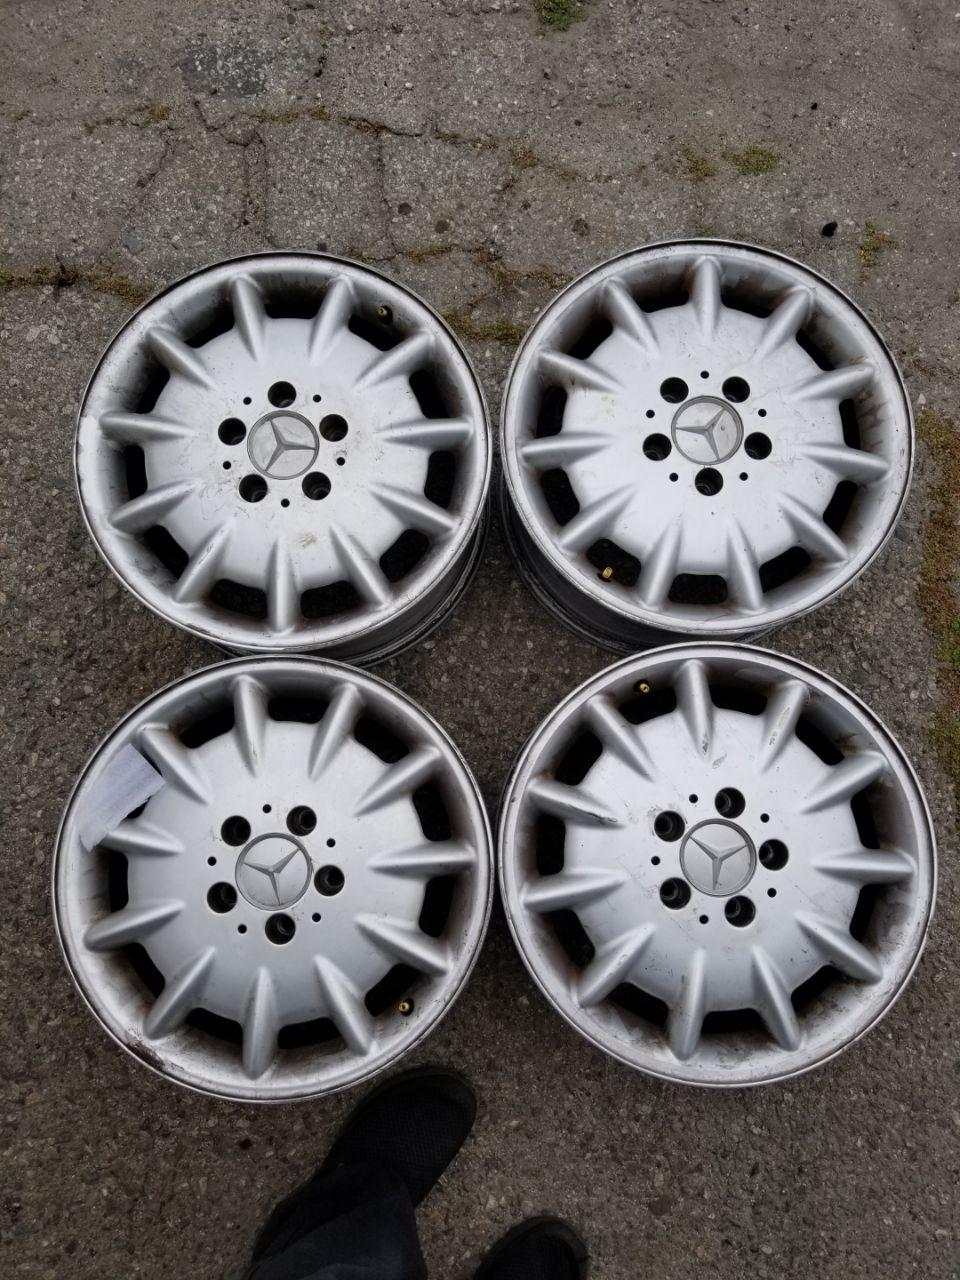 - OEM WHEELS - 2000-2003 MERCEDES E-CLASS 16x7.5 11 SPOKE Hollander #65238 /  USED